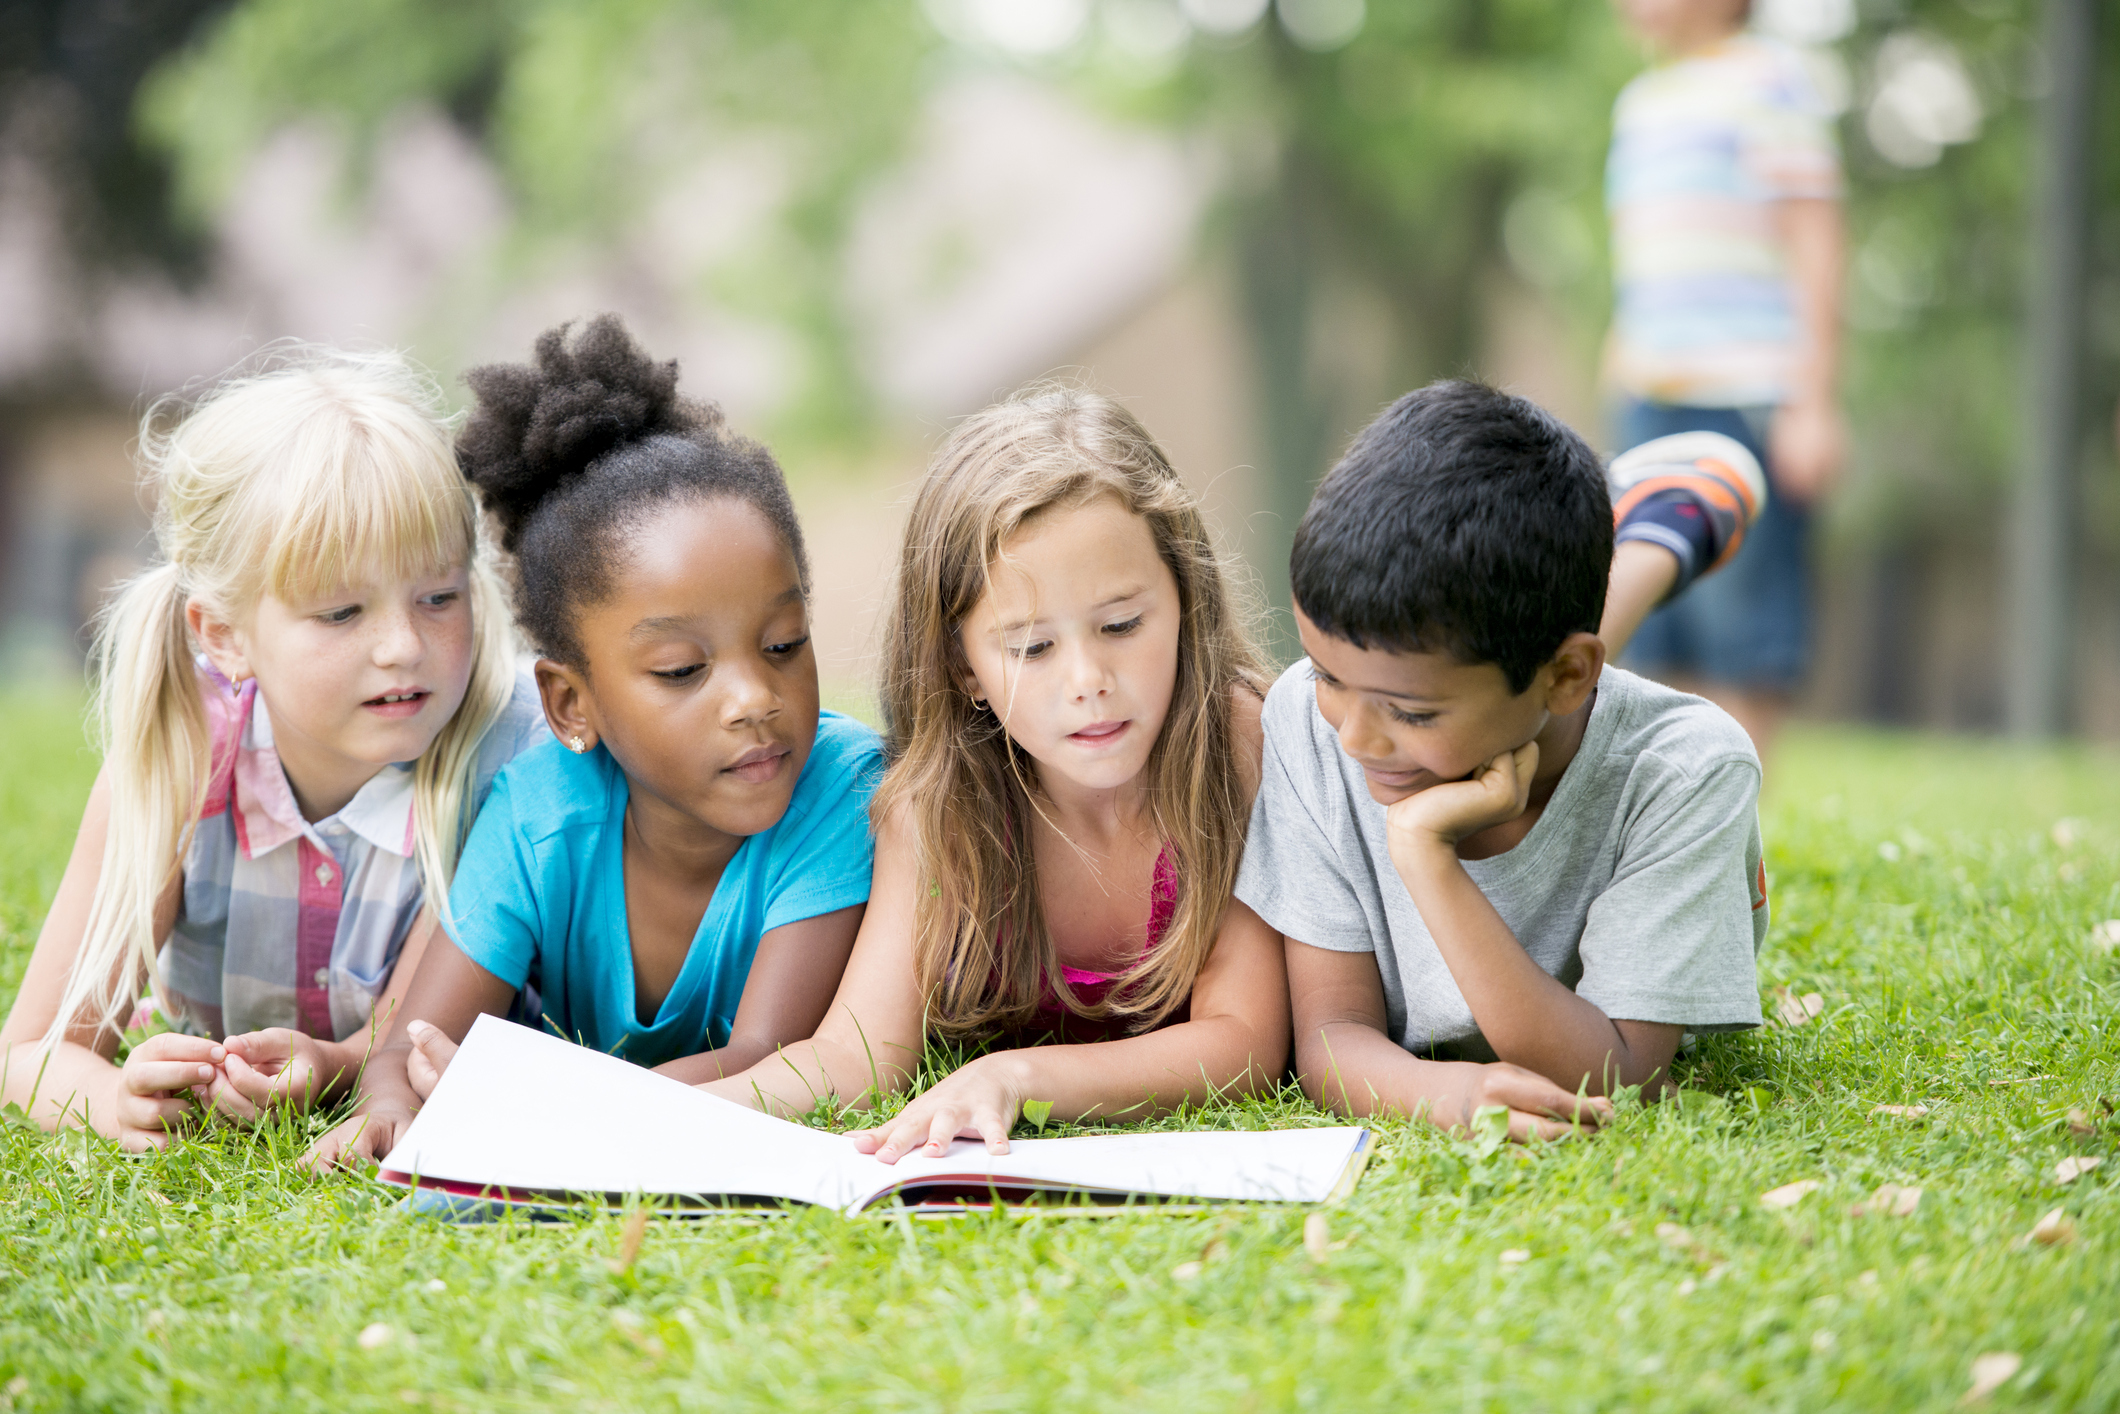 photo of 4 kids laying on grass looking at an open book